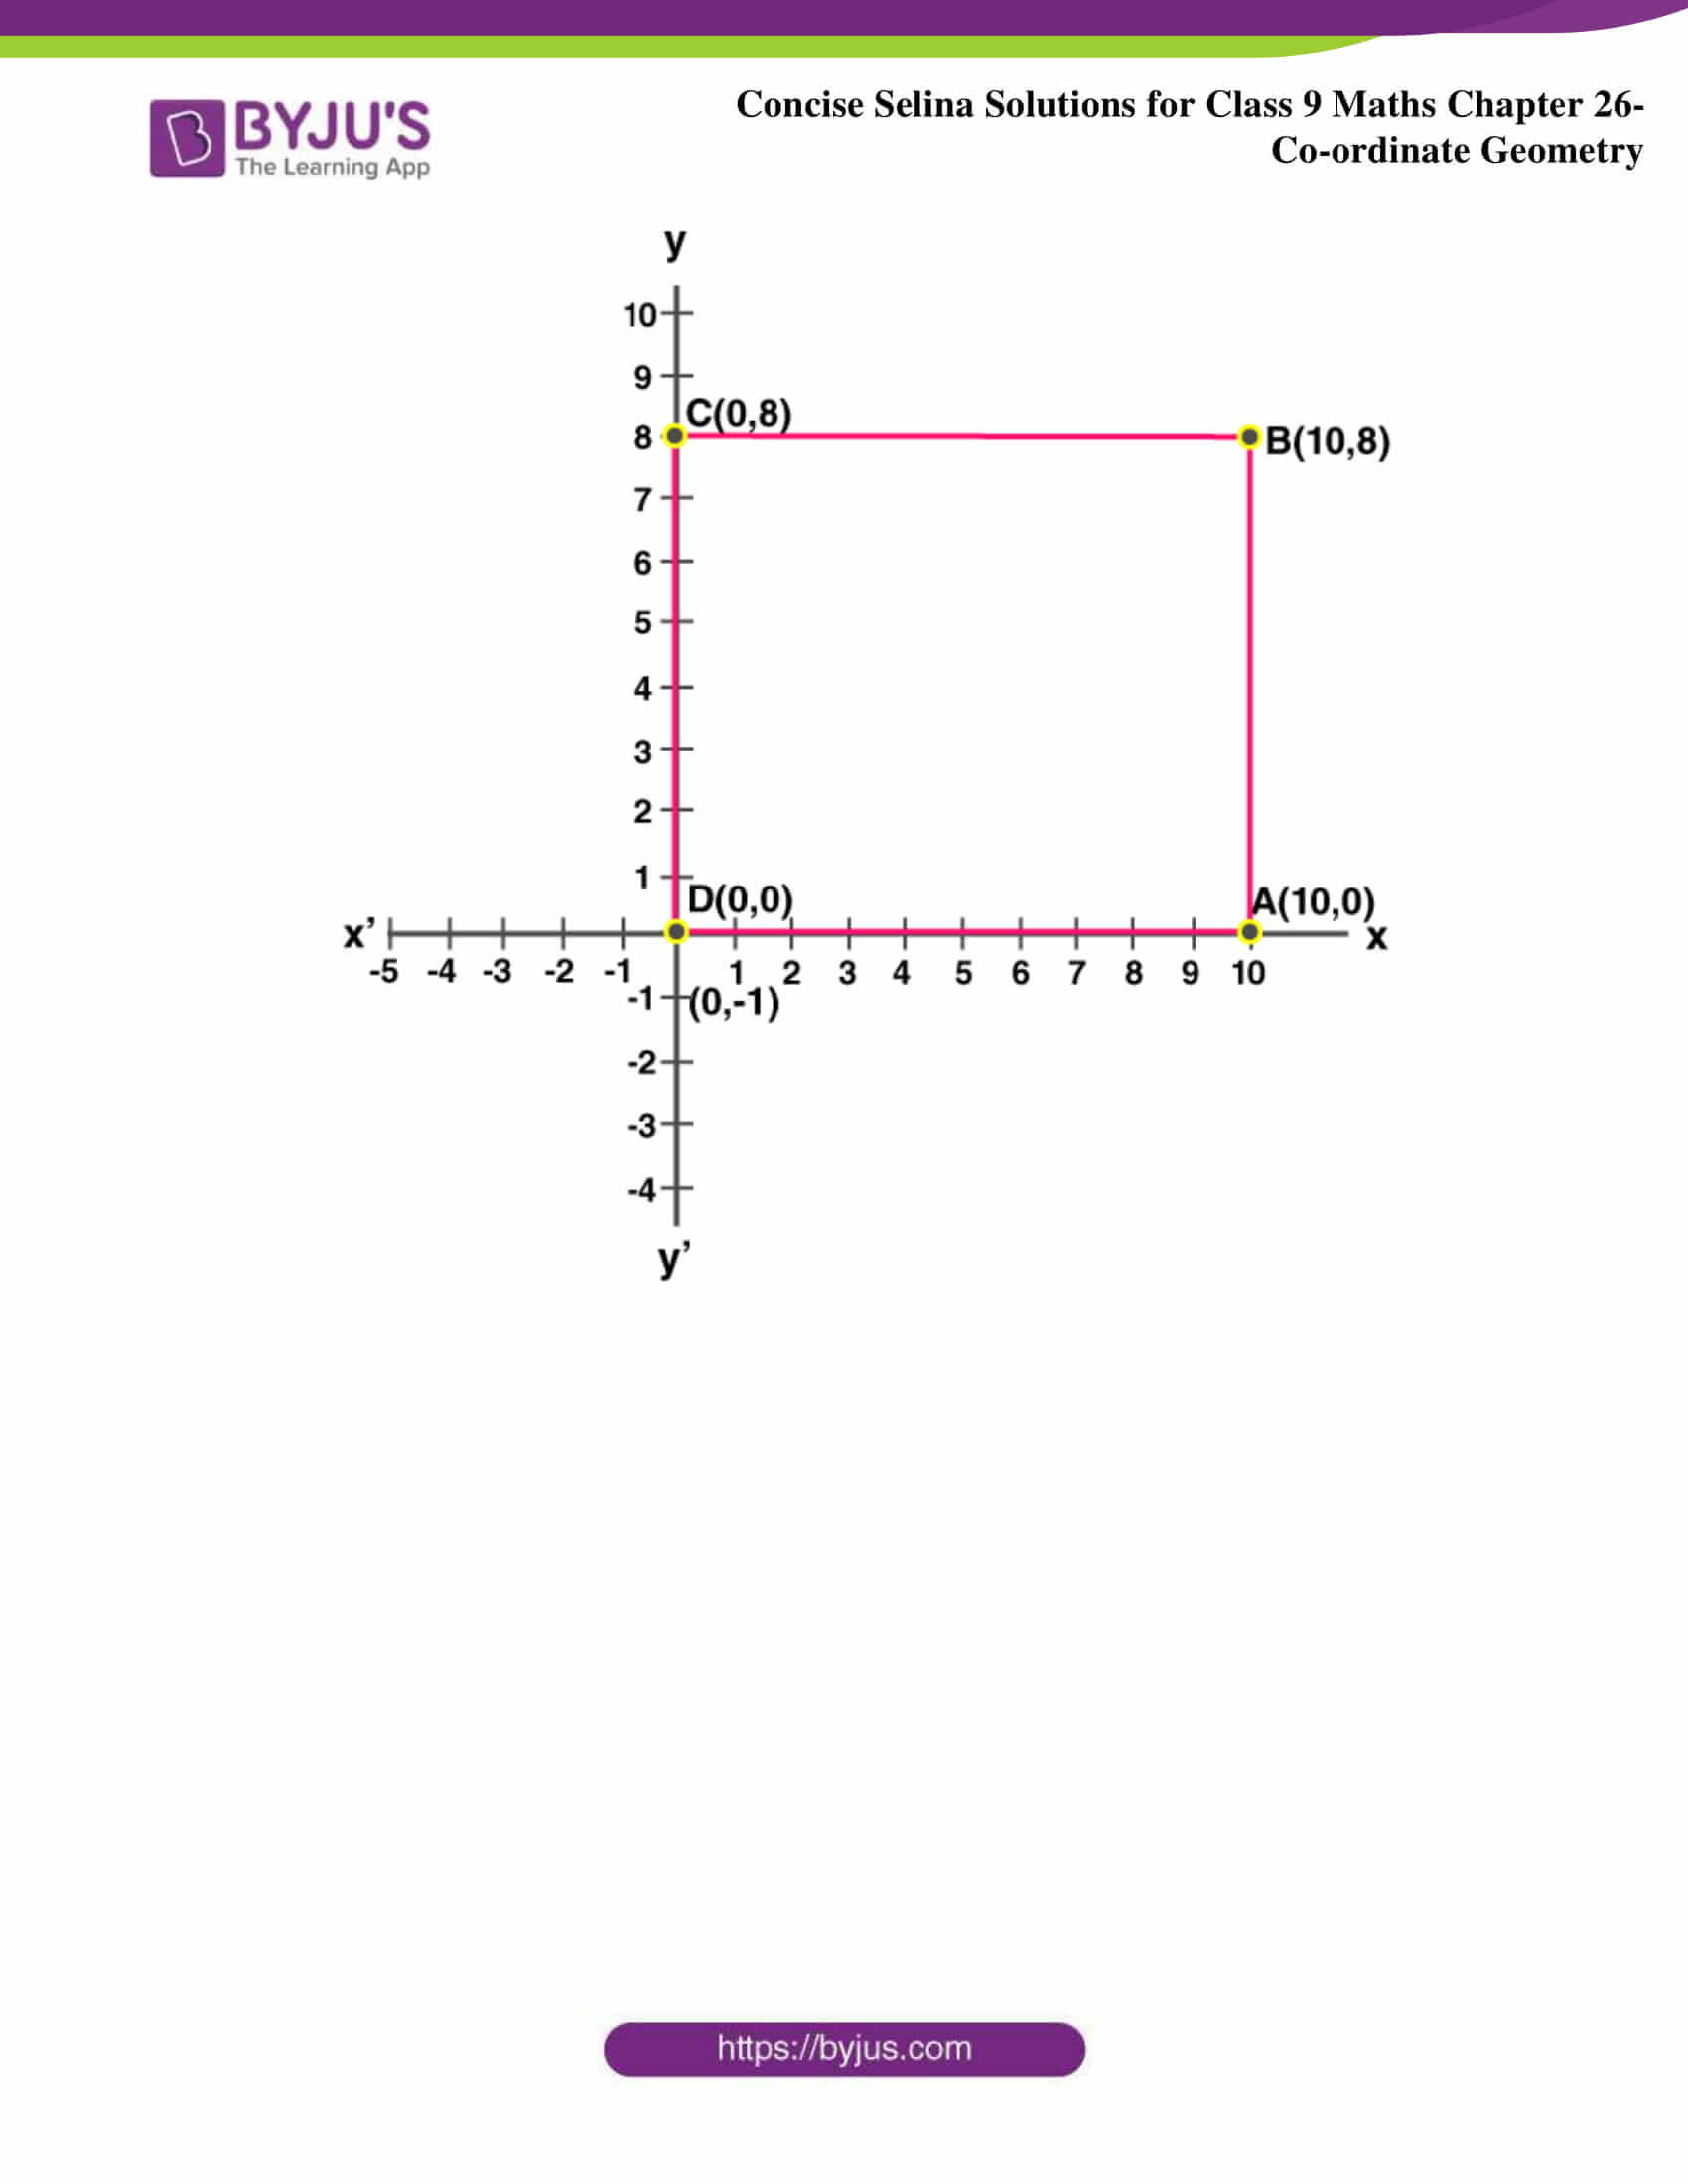 Selina Solutions for Class 9 Maths Chapter 26 part 15